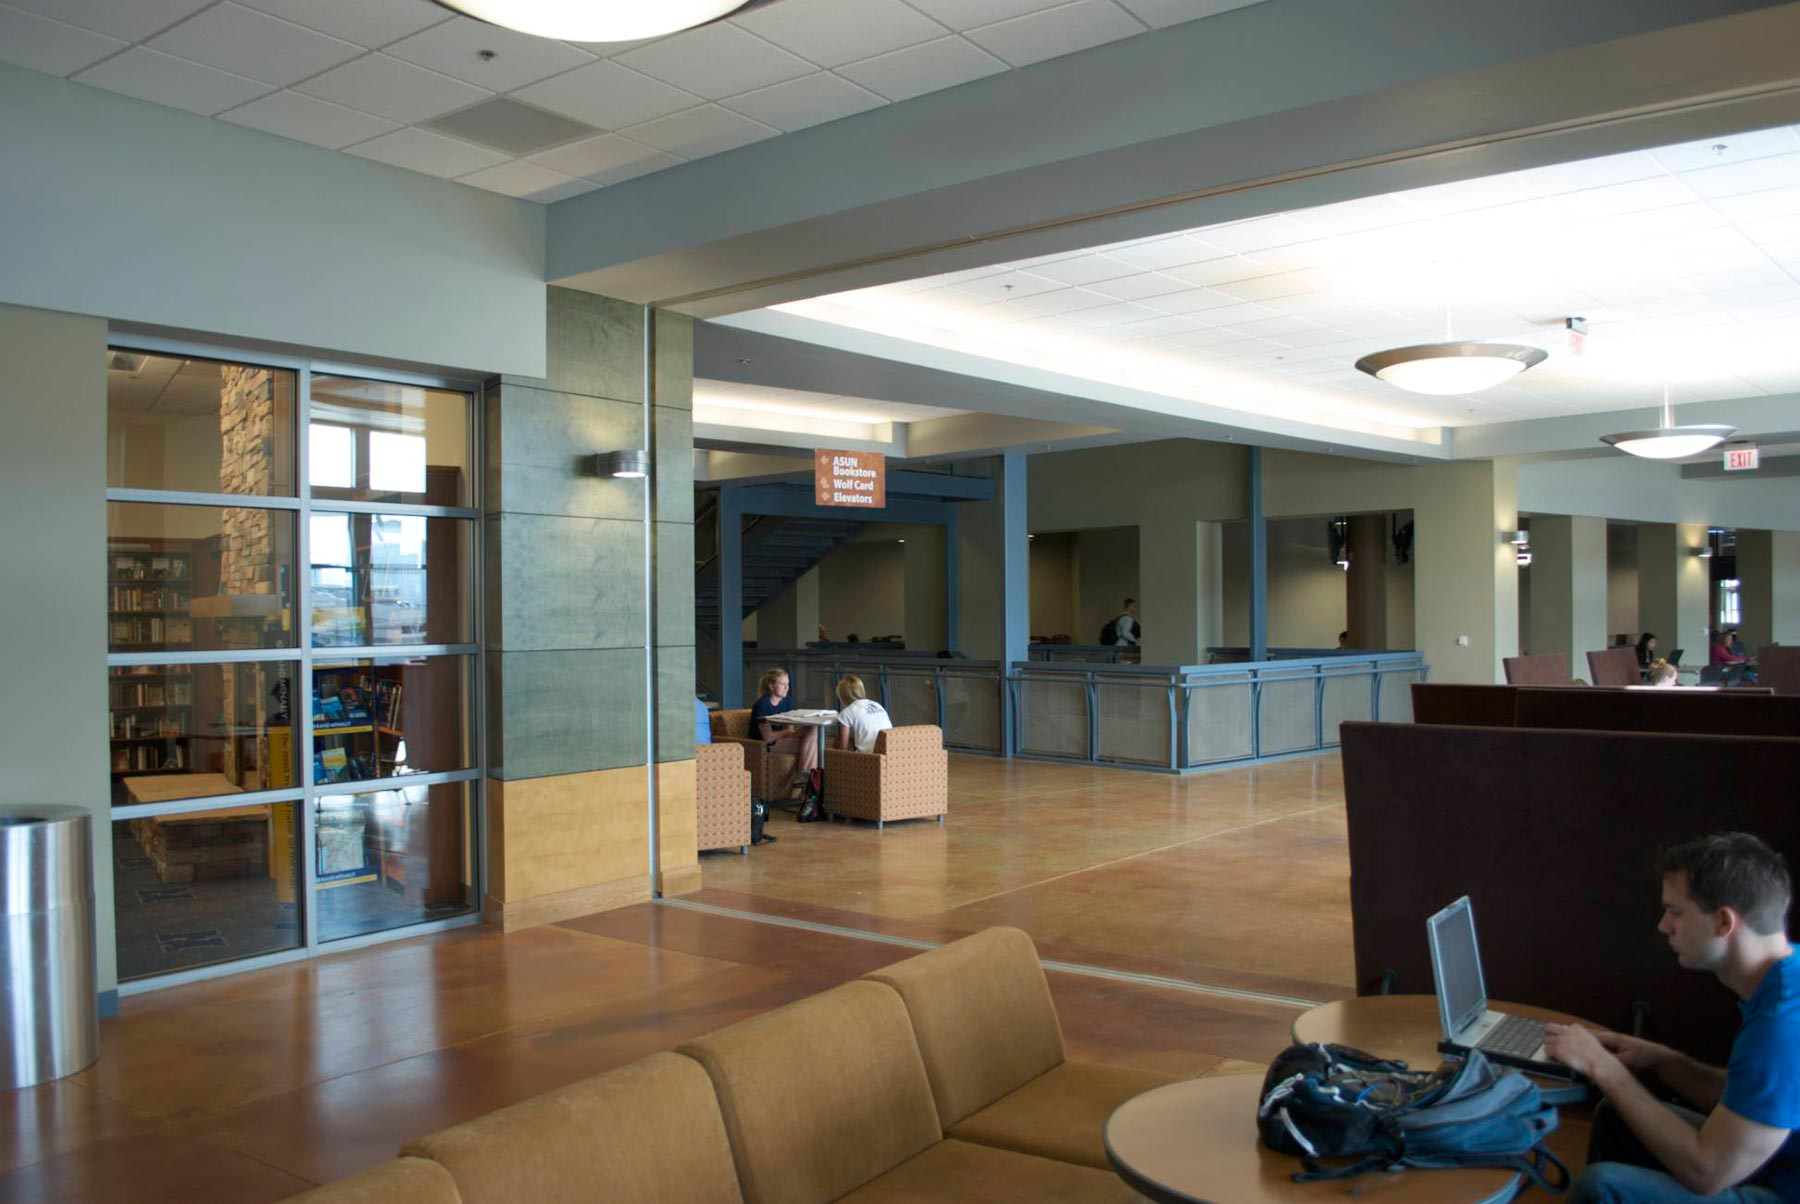 Southwest lounge and corridor at bookstore